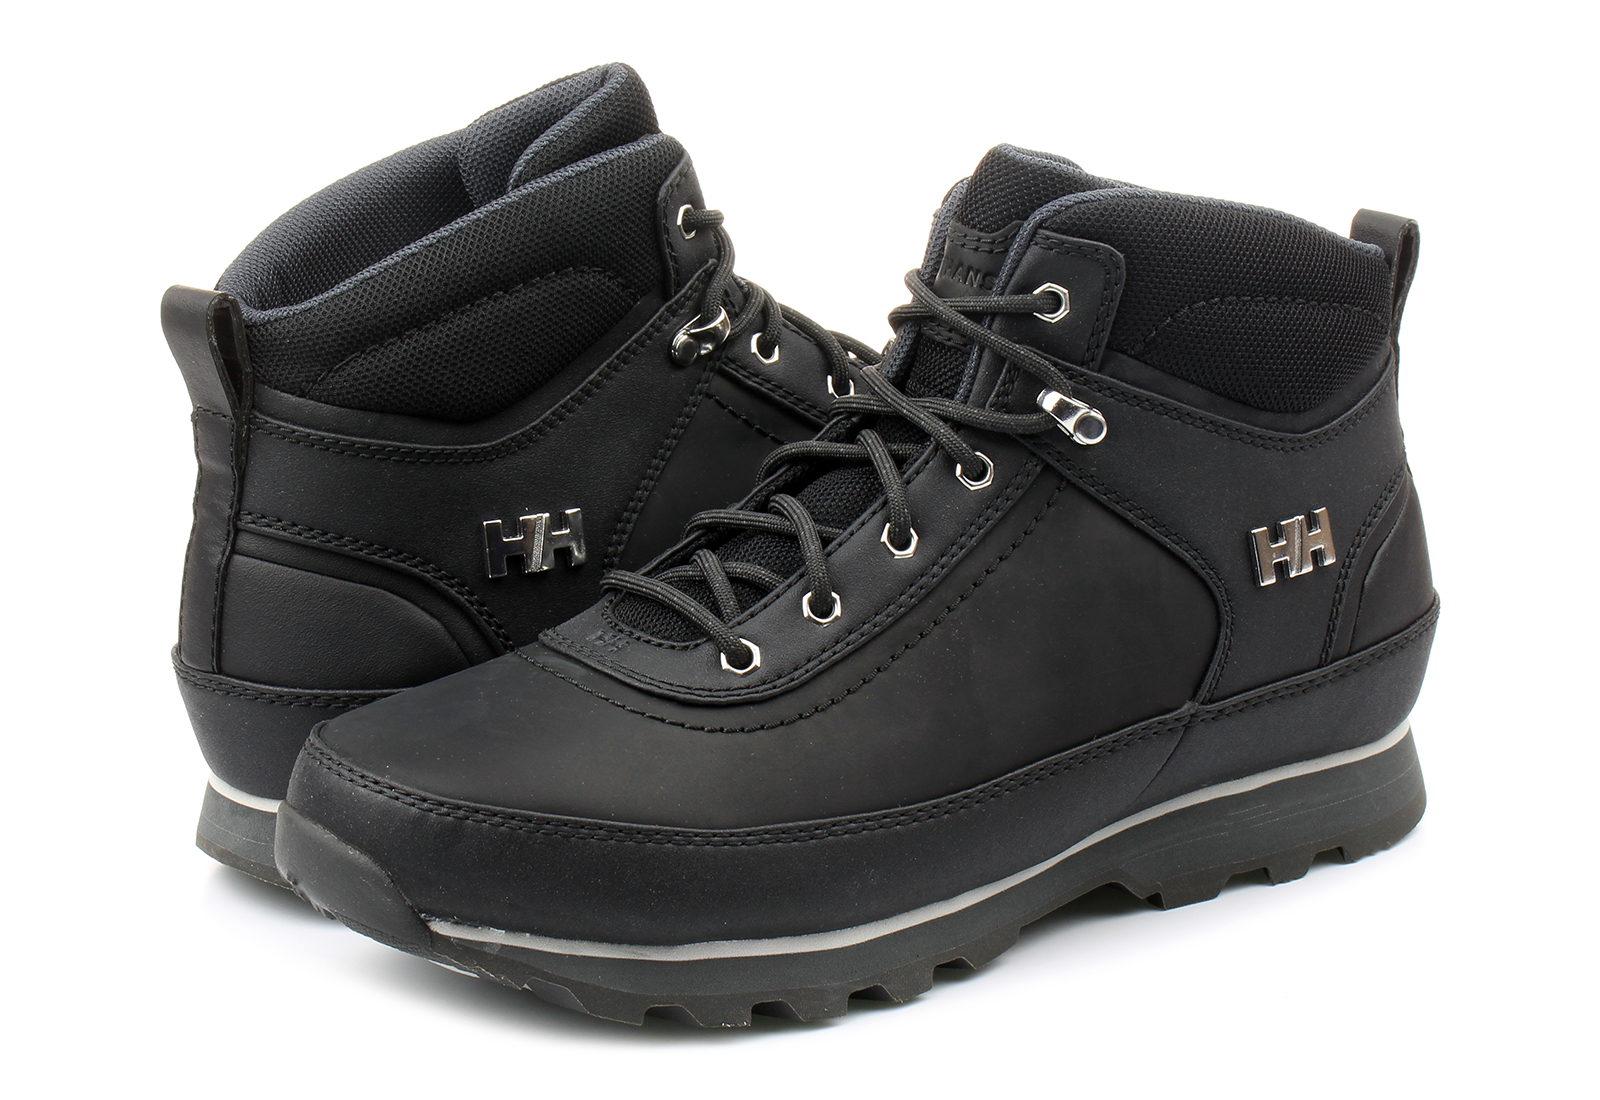 2b4dc5aa7a97 Helly Hansen Boots - Calgary - 10874-991 - Online shop for sneakers ...